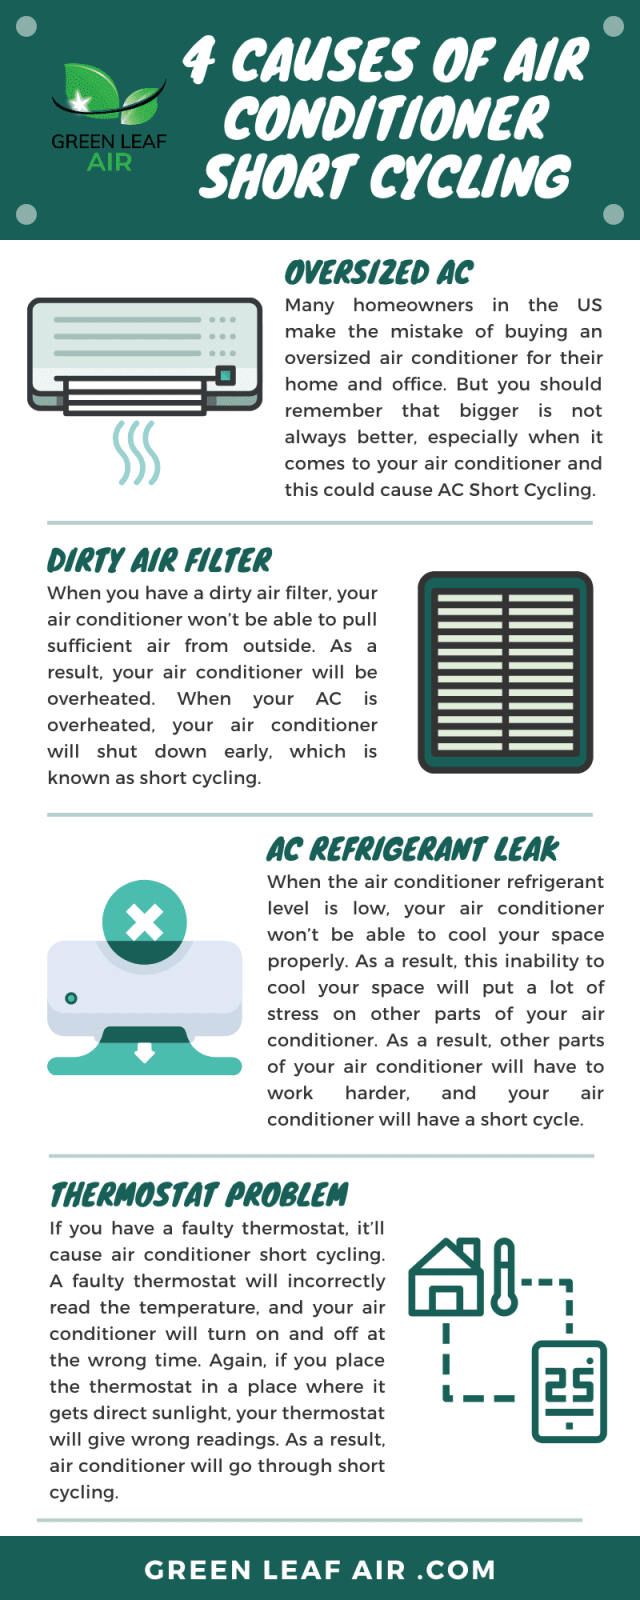 4 Causes of Air Conditioner Short Cycling